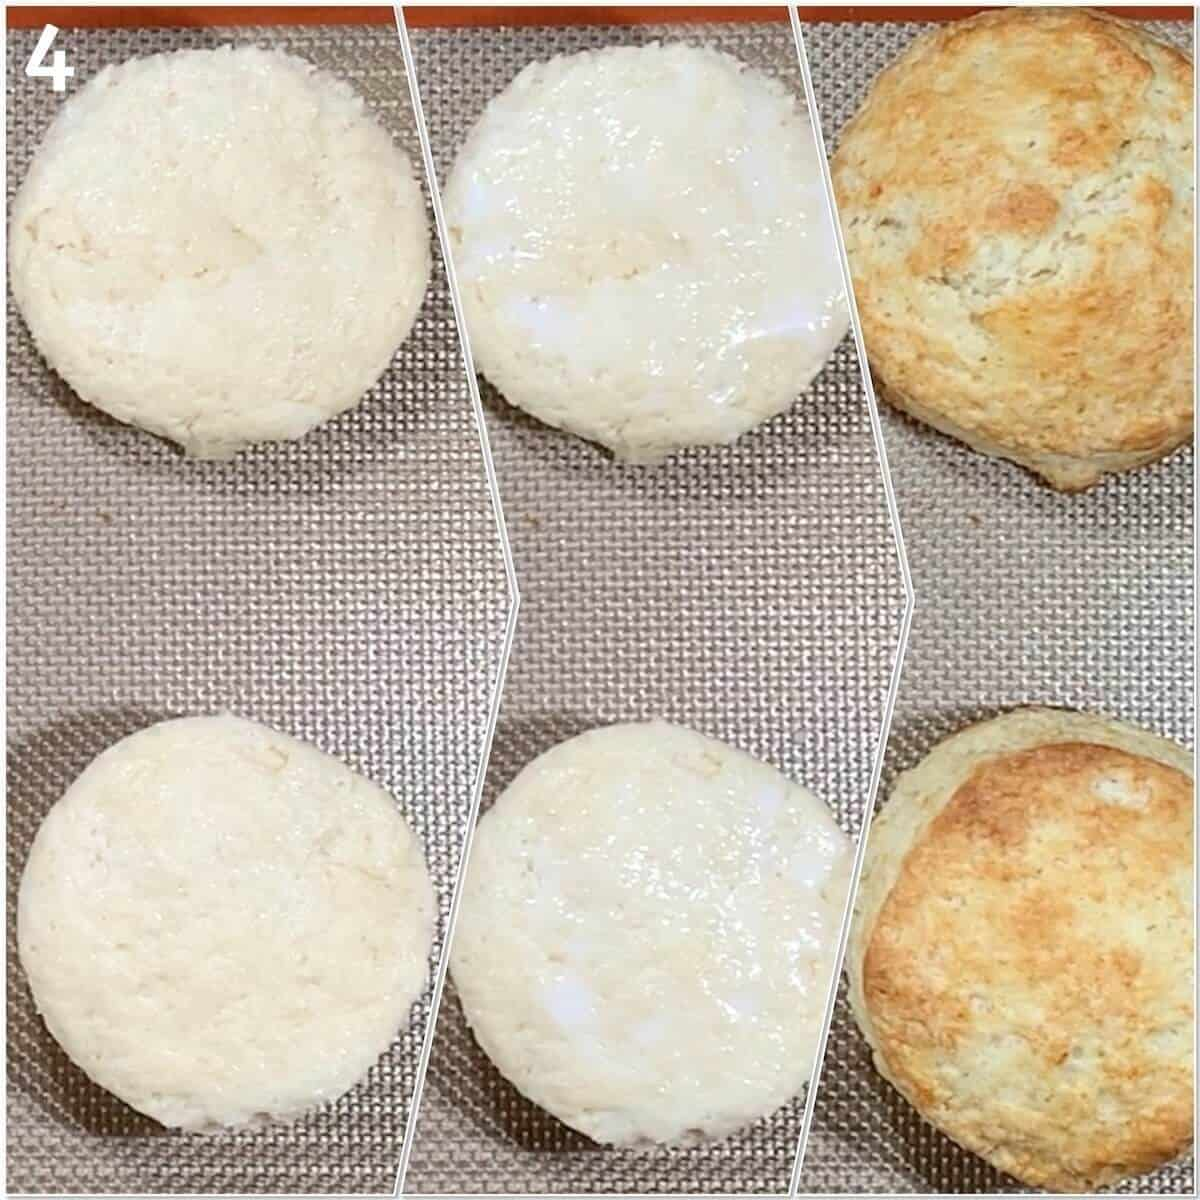 Collage of strawberry blueberry shortcake biscuits before & after baking Shortcake biscuits before & after baking.